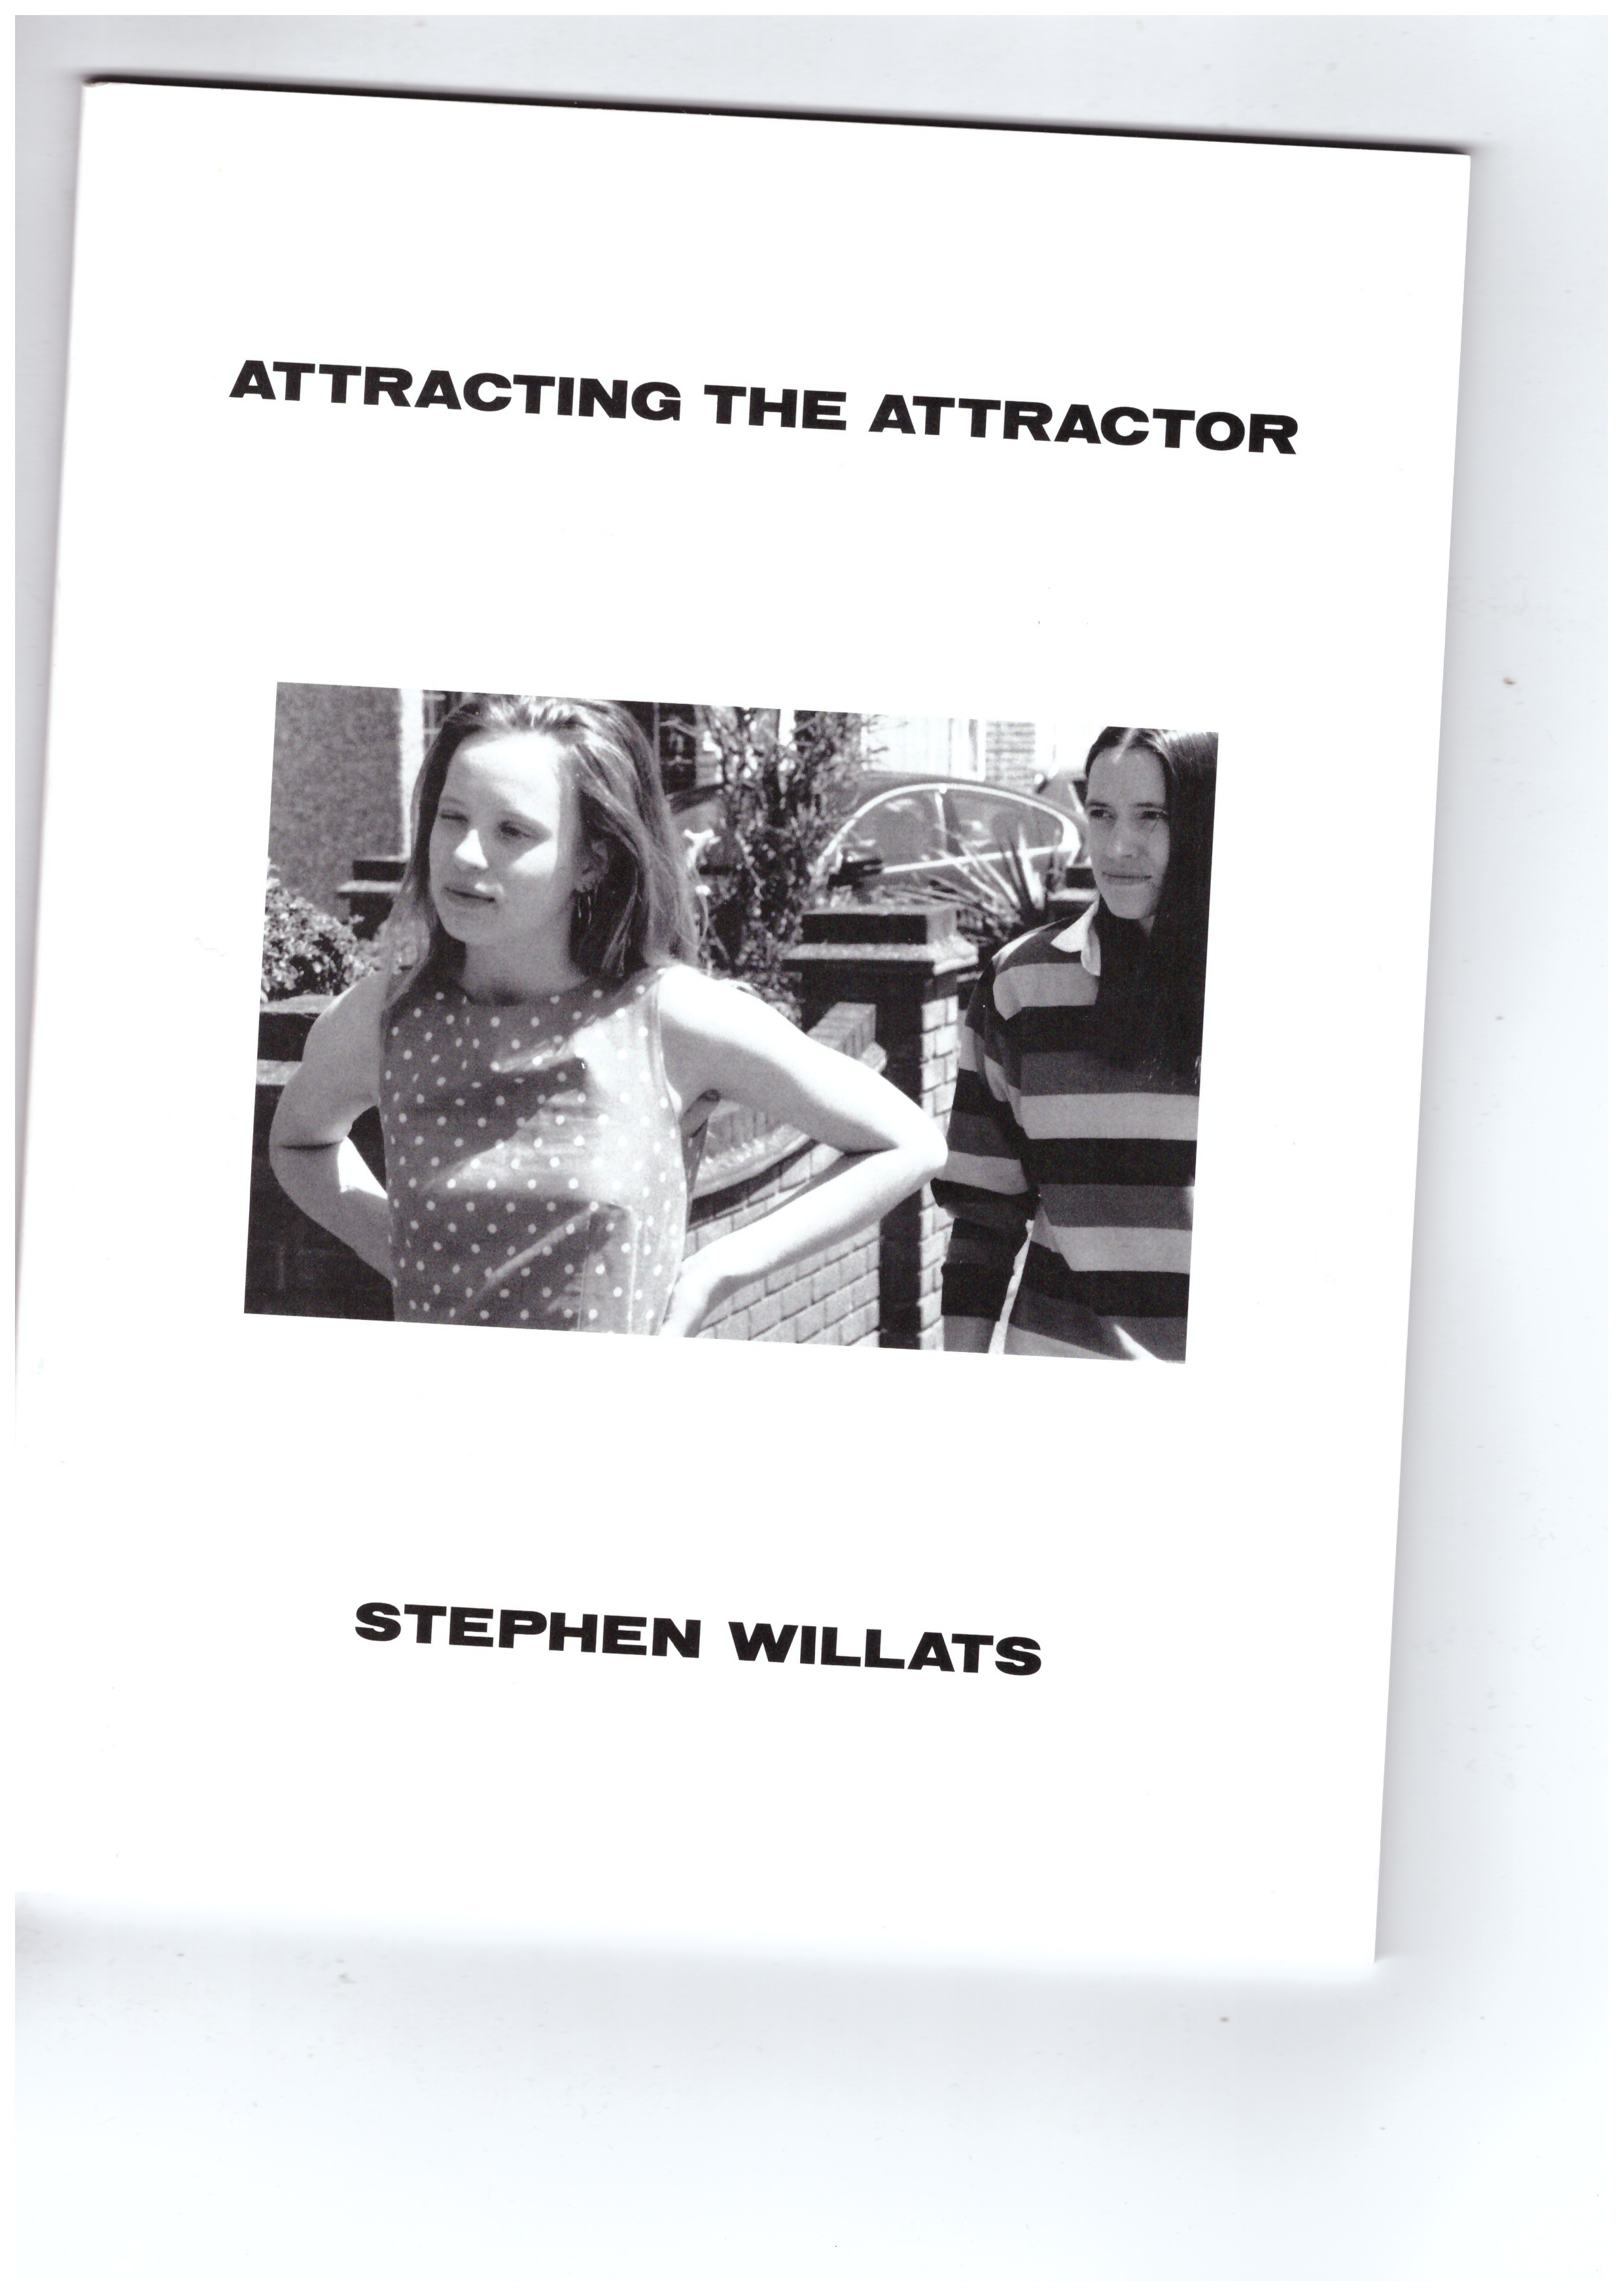 WILLATS, Stephen - Attracting the Attractor